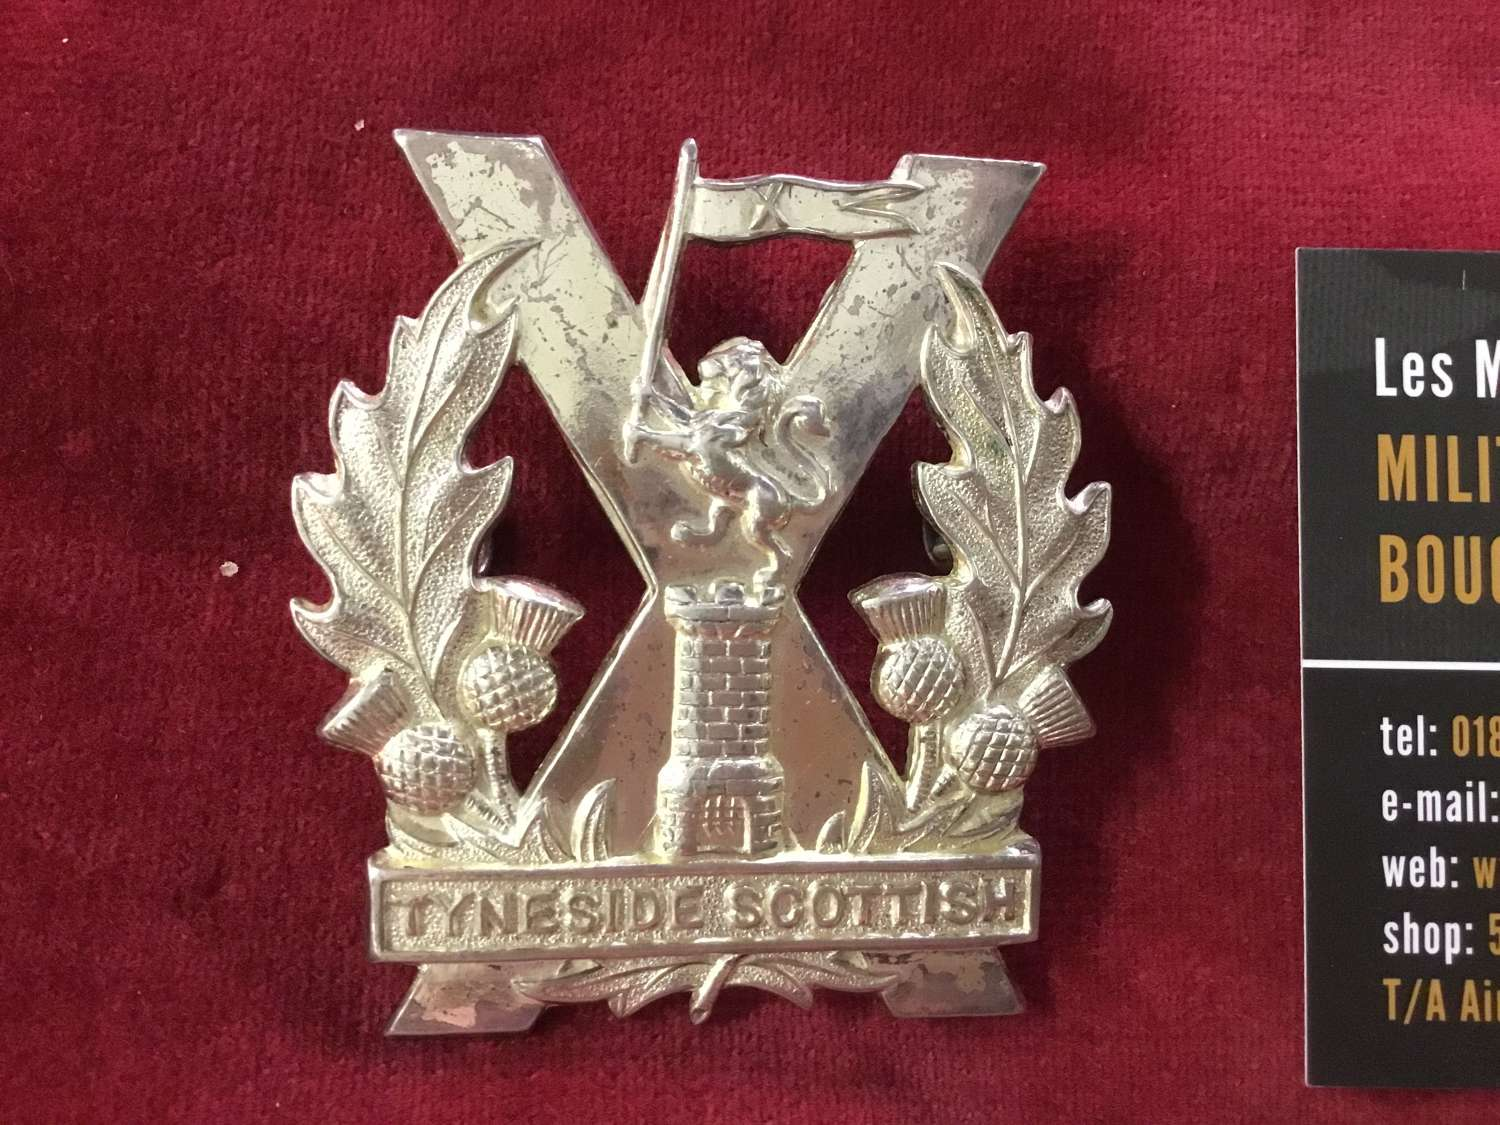 204th (Tyneside Scottish) Bty Royal Artillery Cap Badge